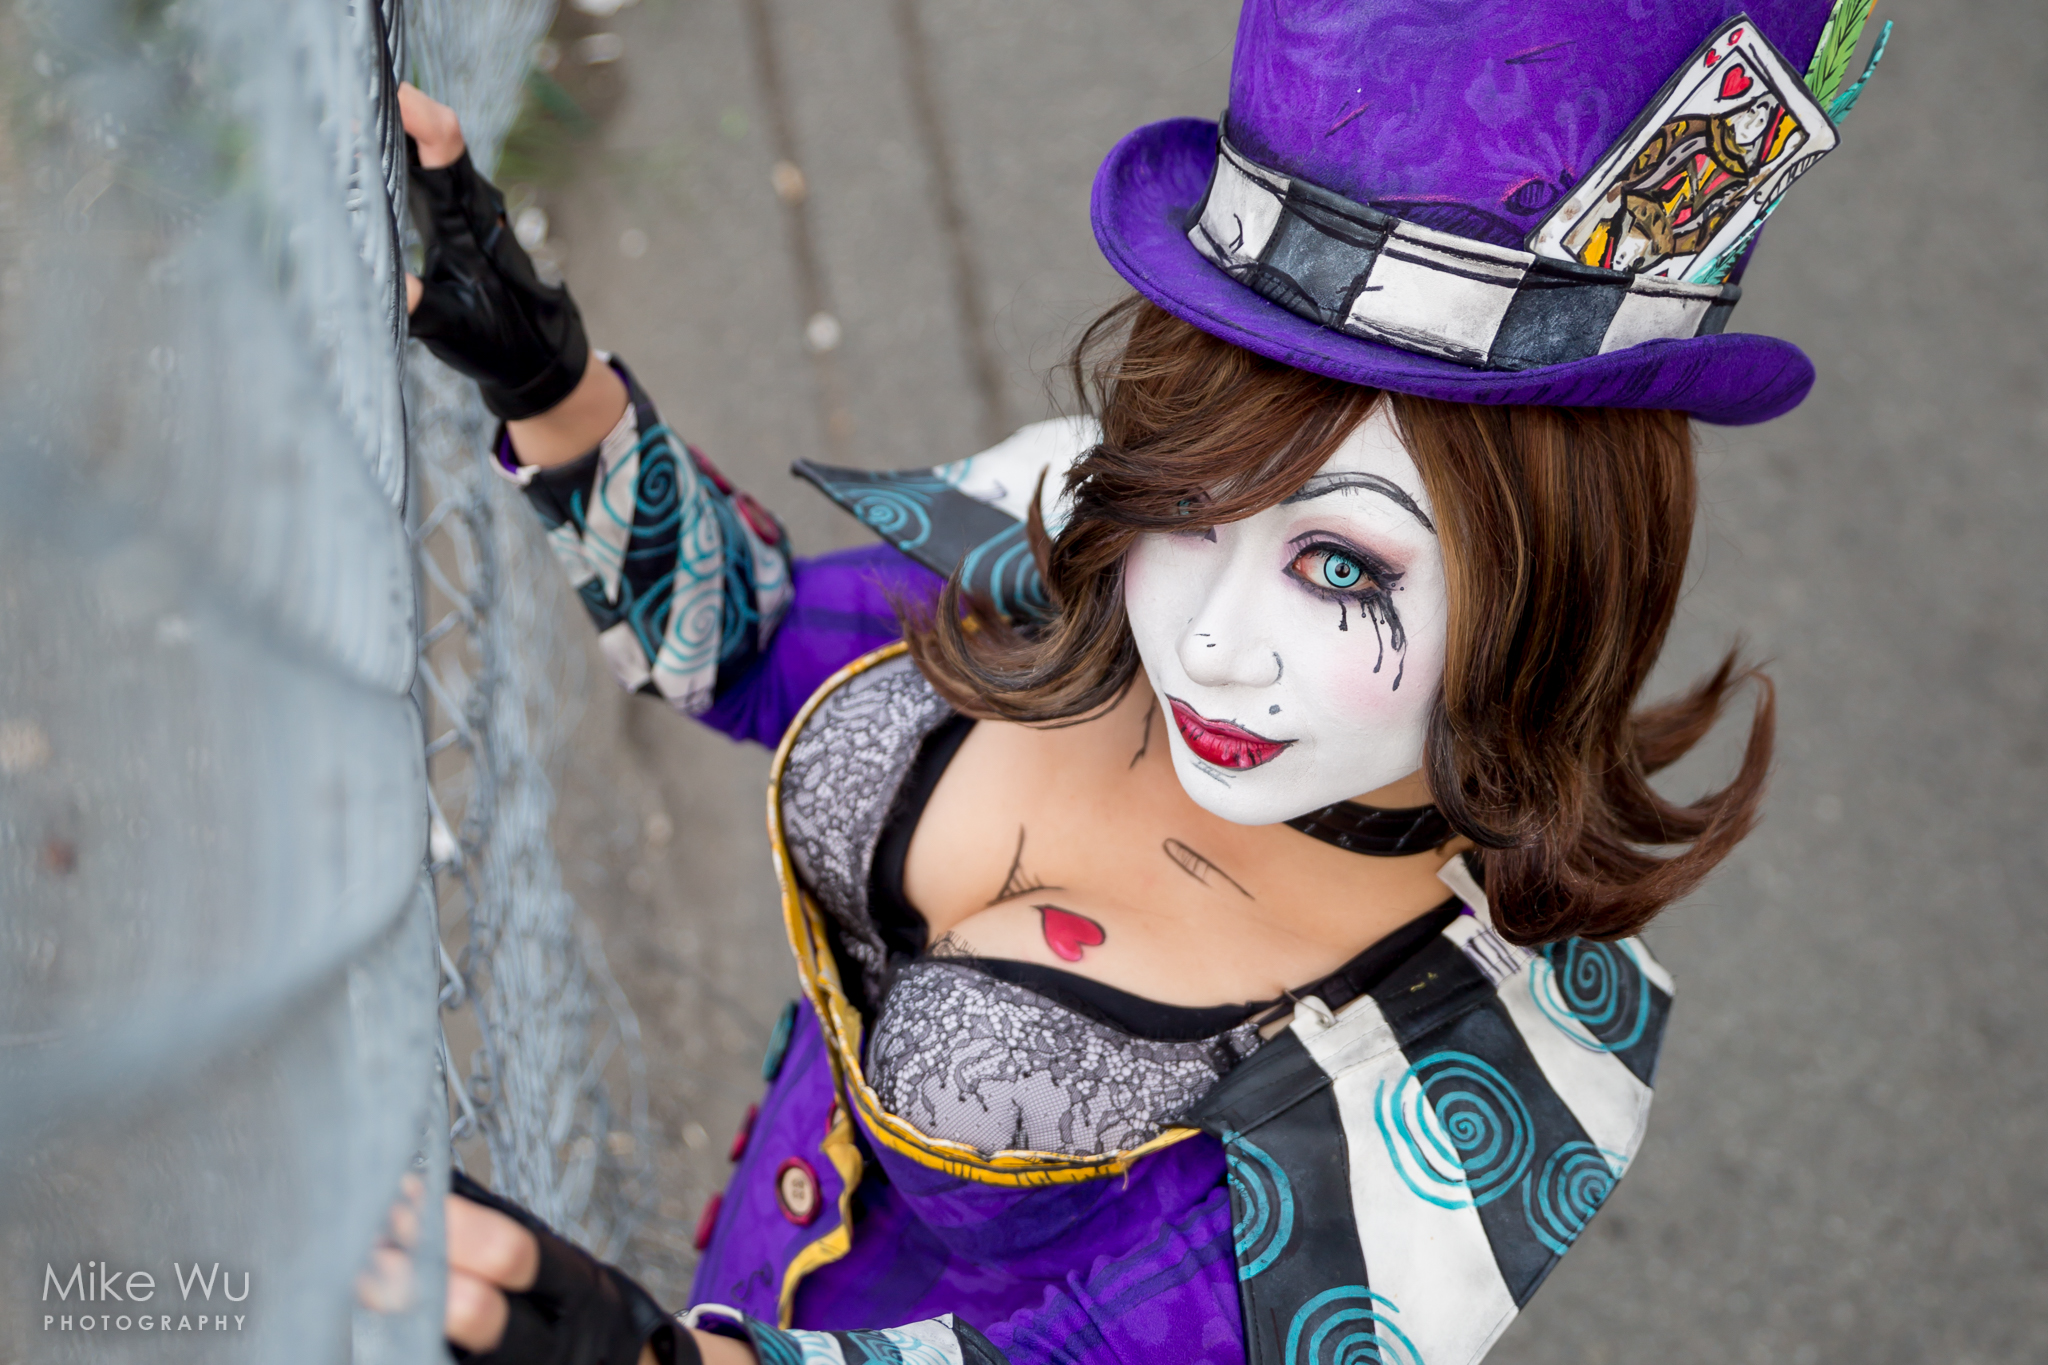 cosplay, video game, borderlands, moxxi, costume, purple, fence, makeup, dress up, character